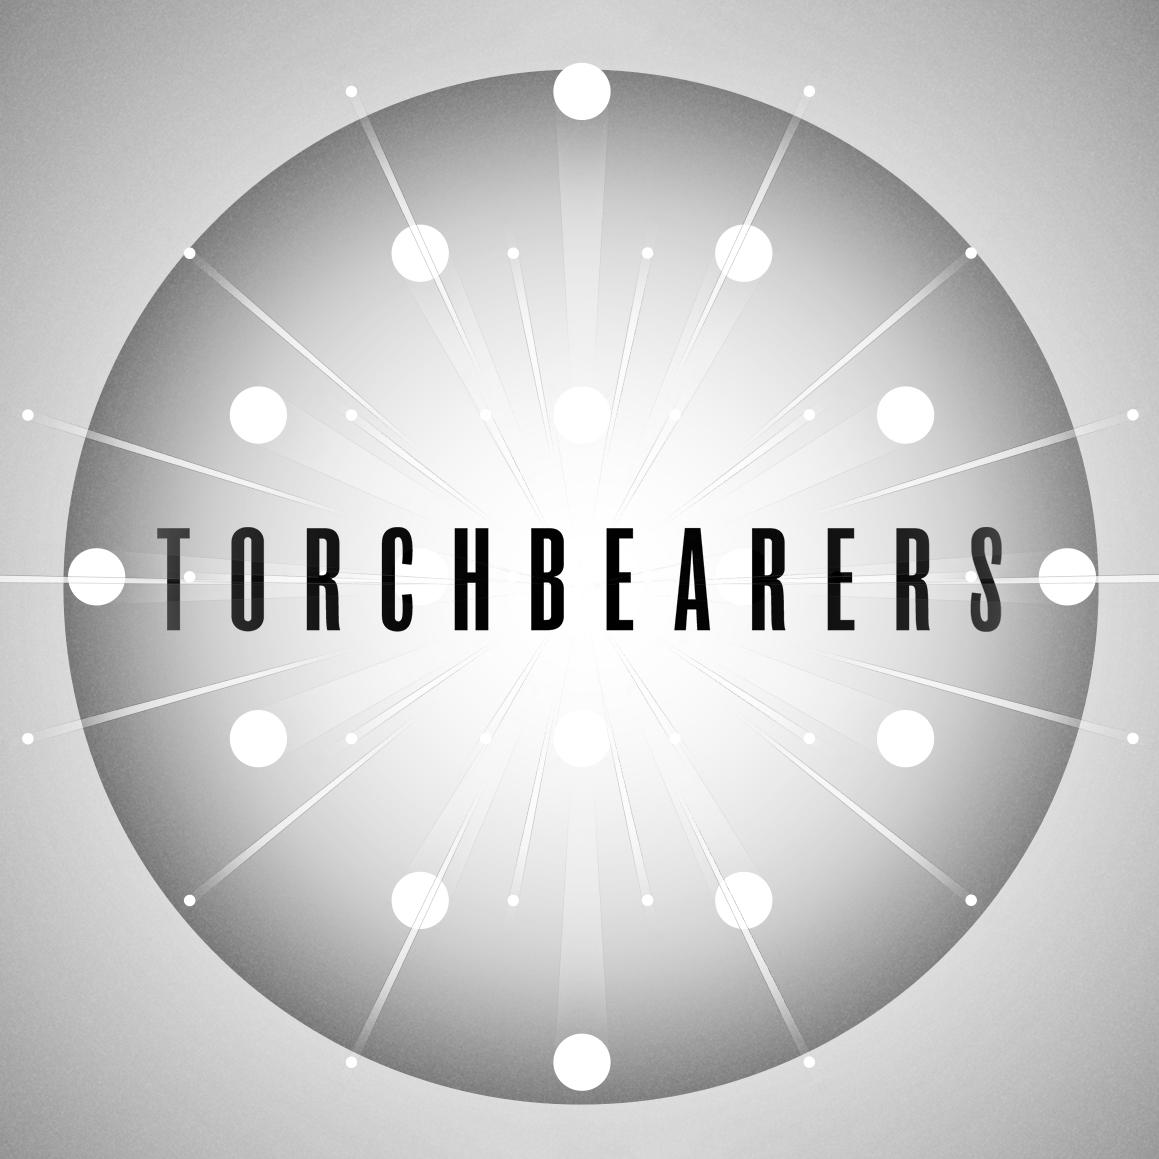 Torchbearers: Ideas in Action